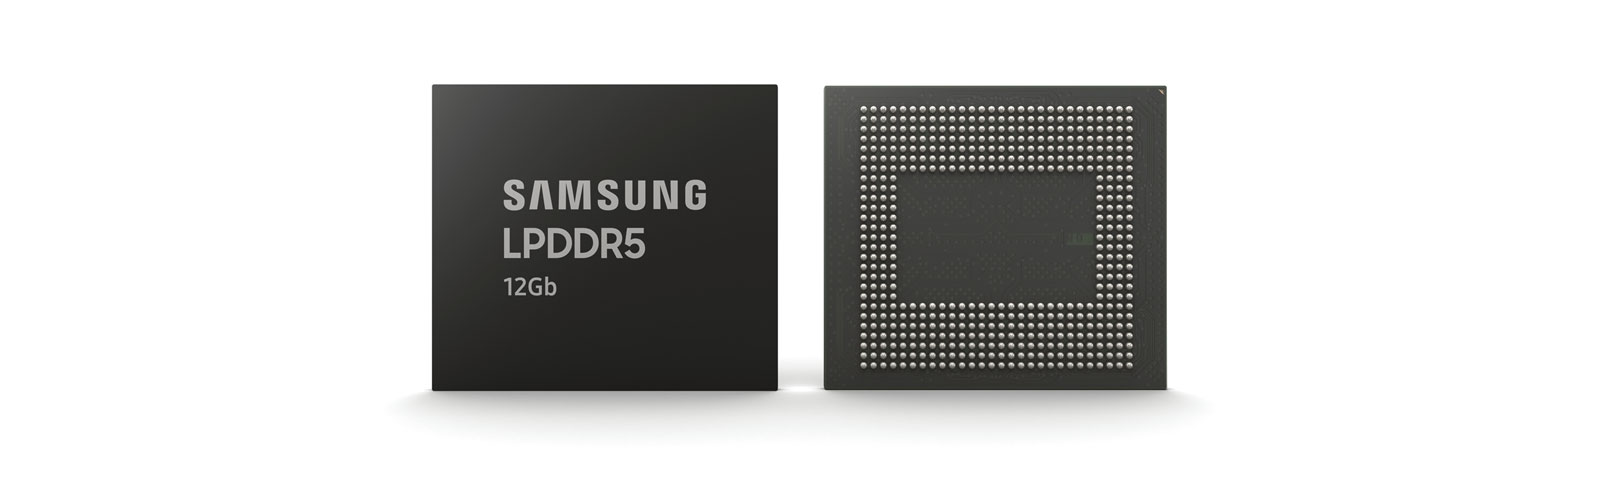 Samsung starts mass production of the world's first 12GB LPDDR5 Mobile DRAM